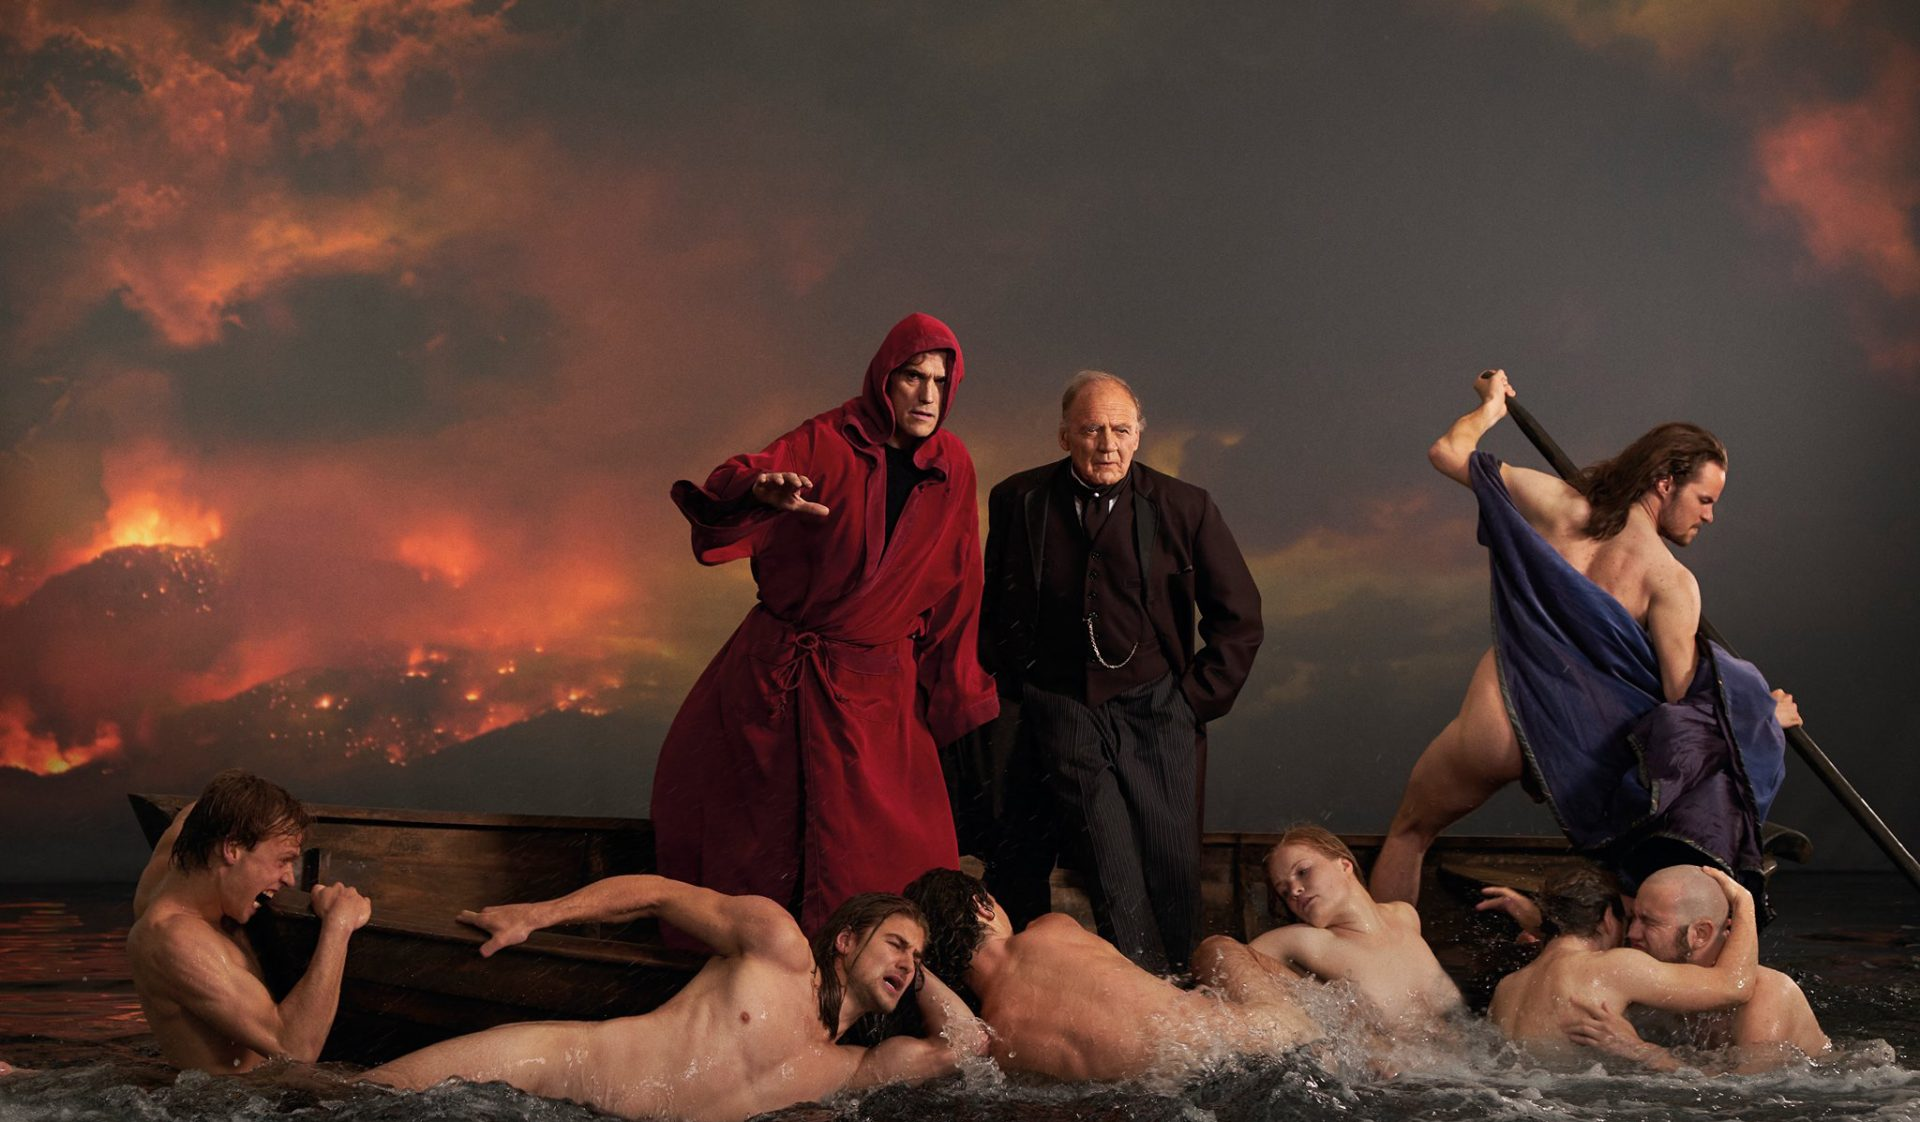 Matt Dillon, in a blood-red hooded robe, and Bruno Ganz, in a black suit, stand atop a boat as naked figures flail in the water below them, in a fantasy sequence mirroring classical Renaissance paintings.